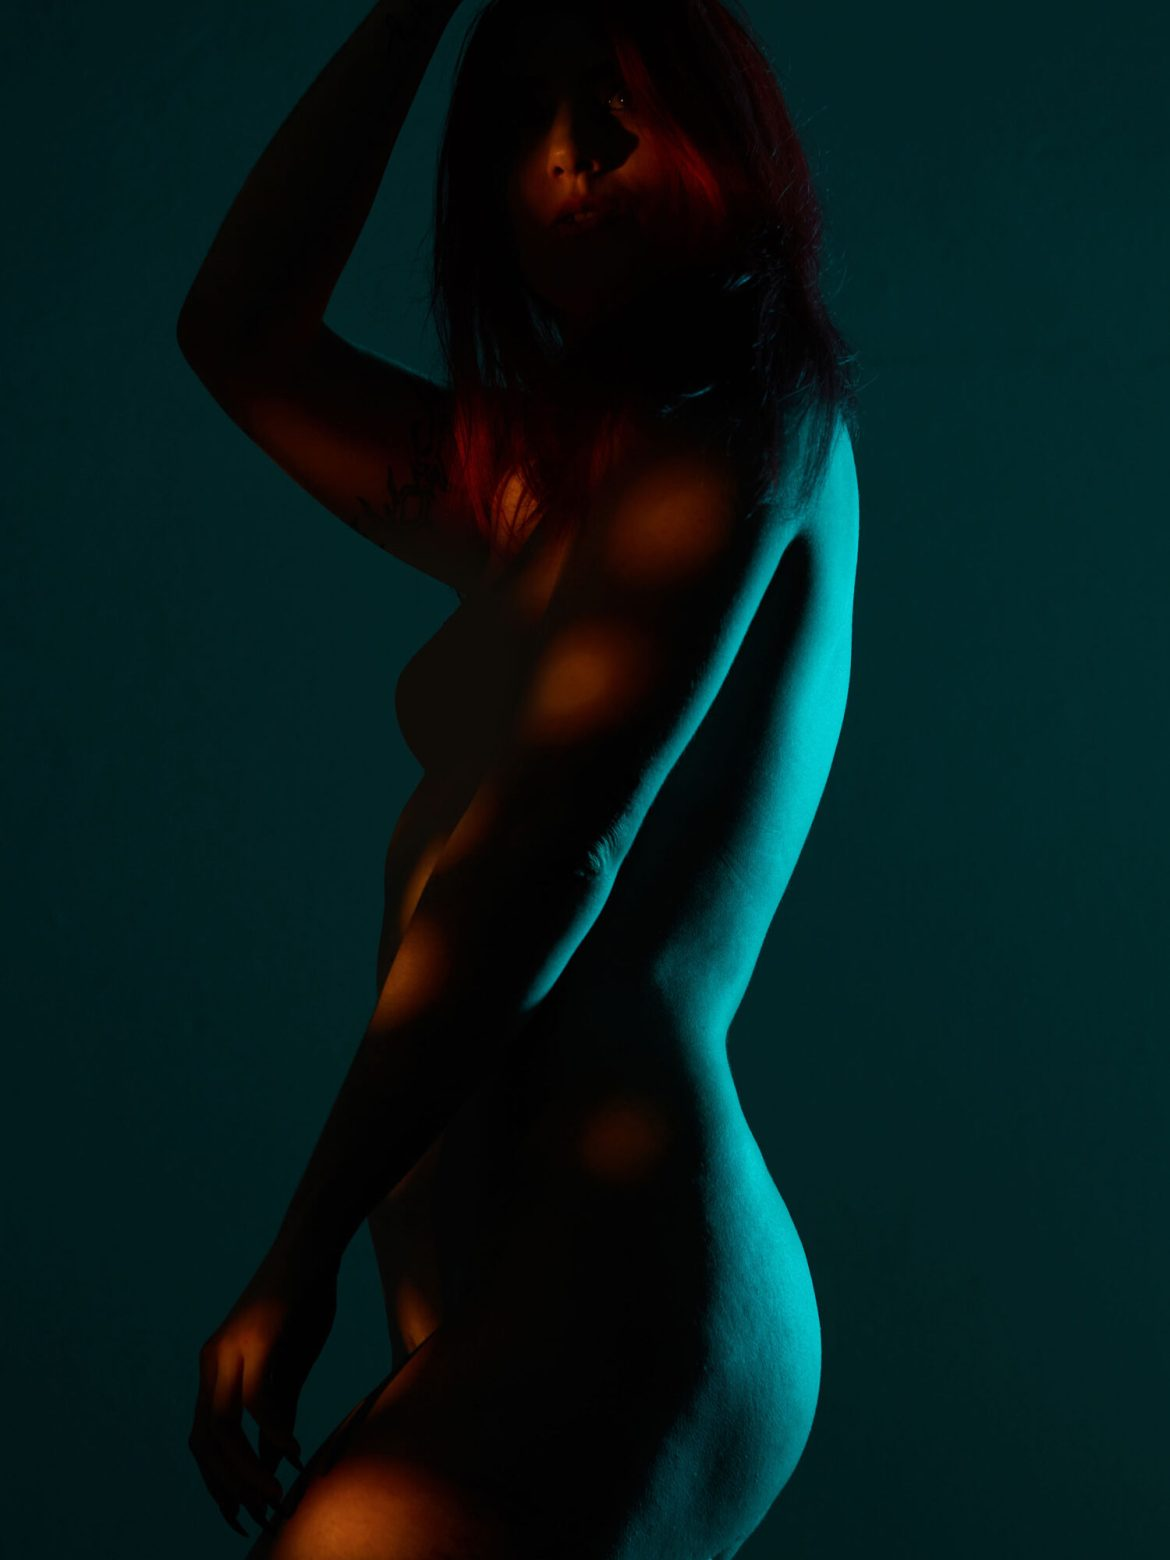 beauty of woman body in dramatic Lighting